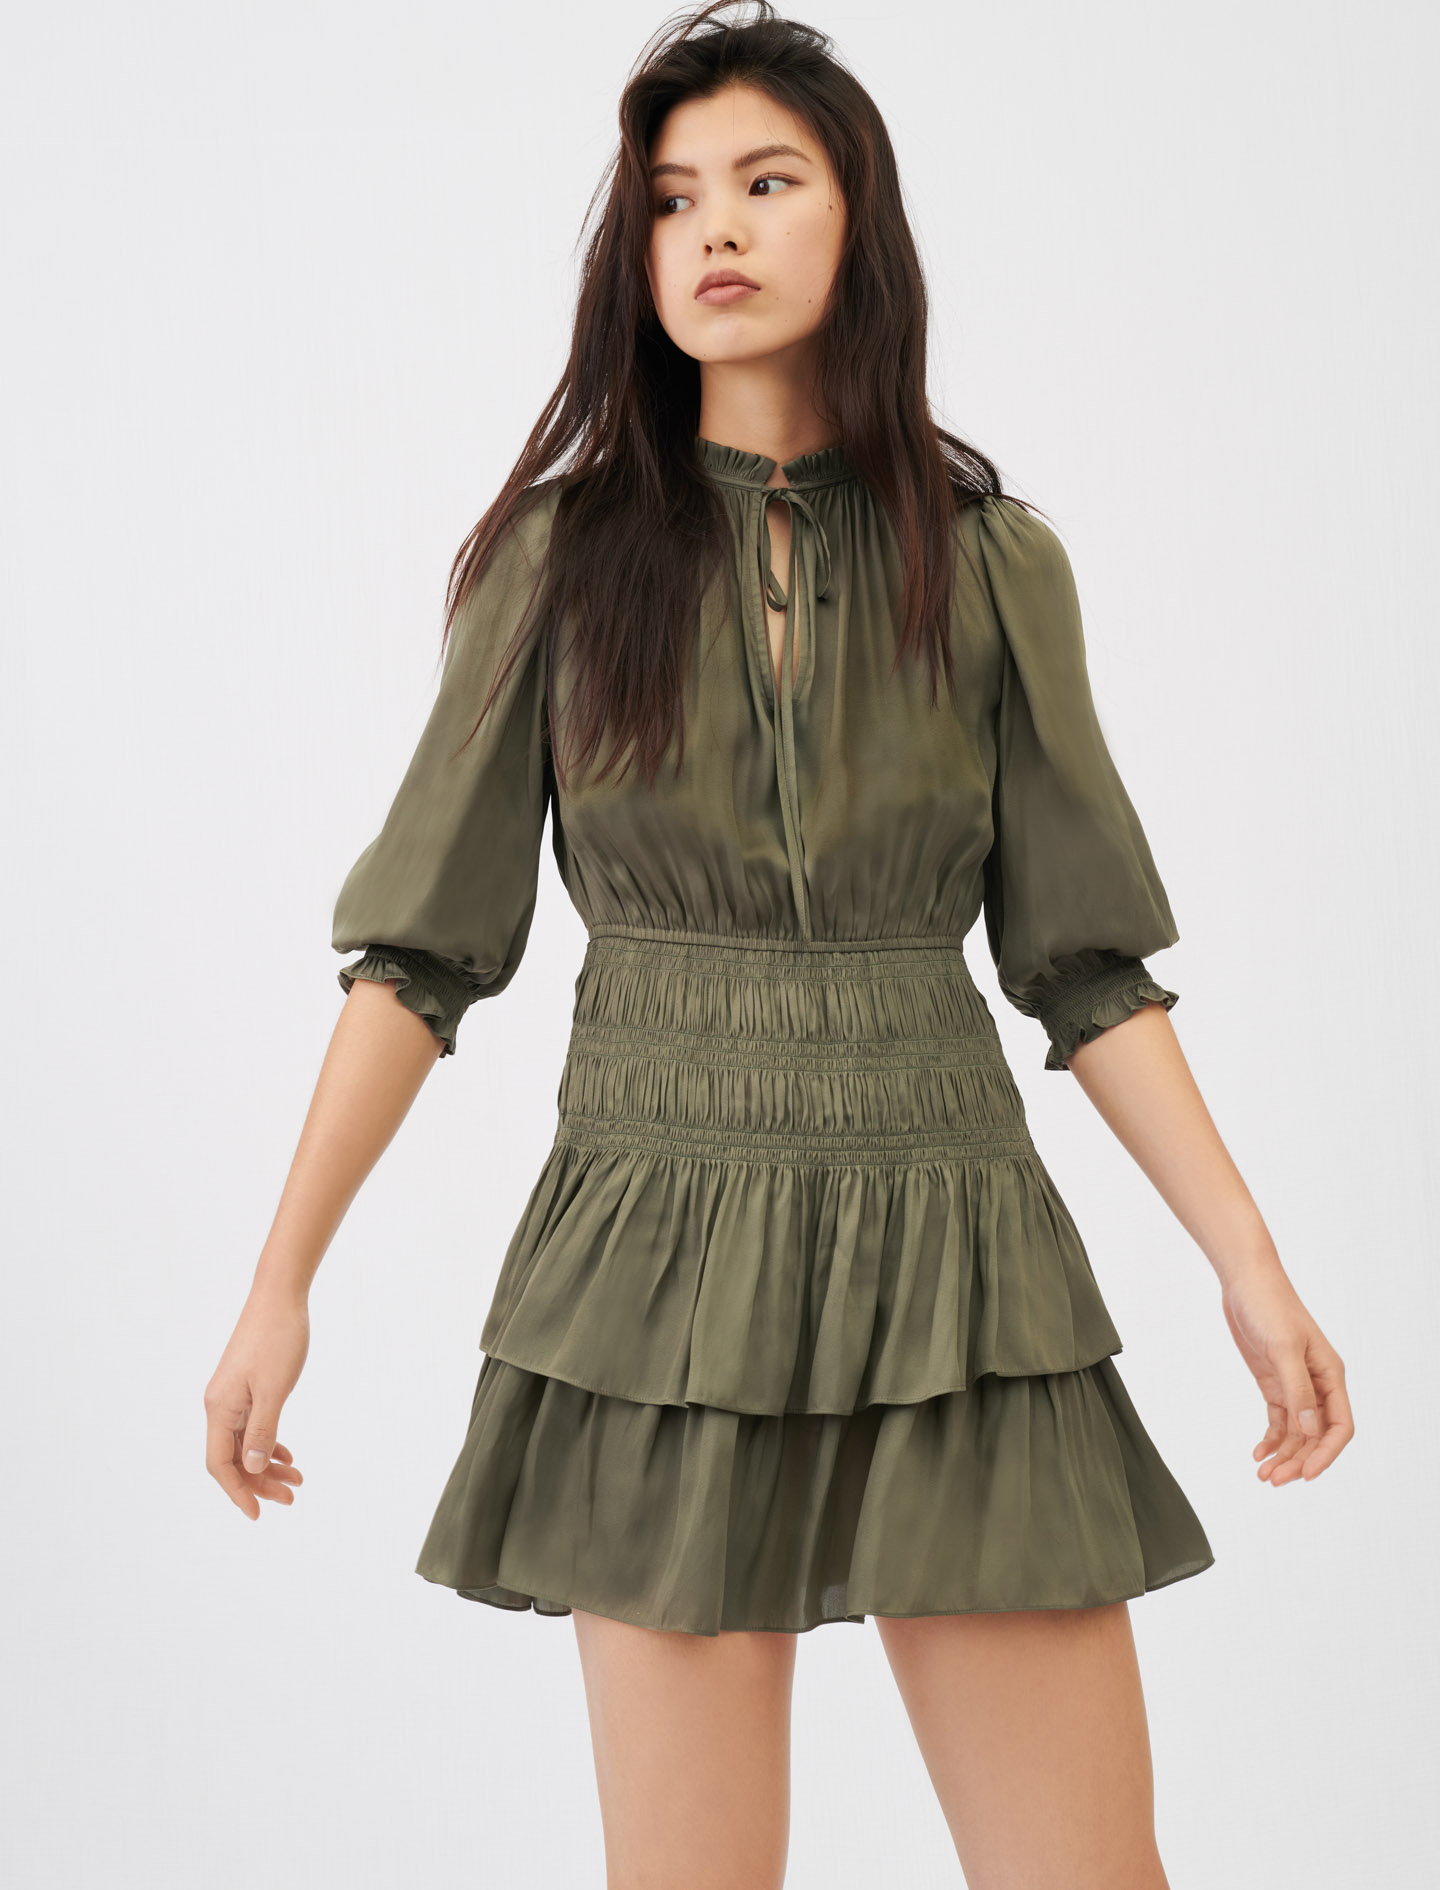 Satin dress with smocking and ruffles - Green